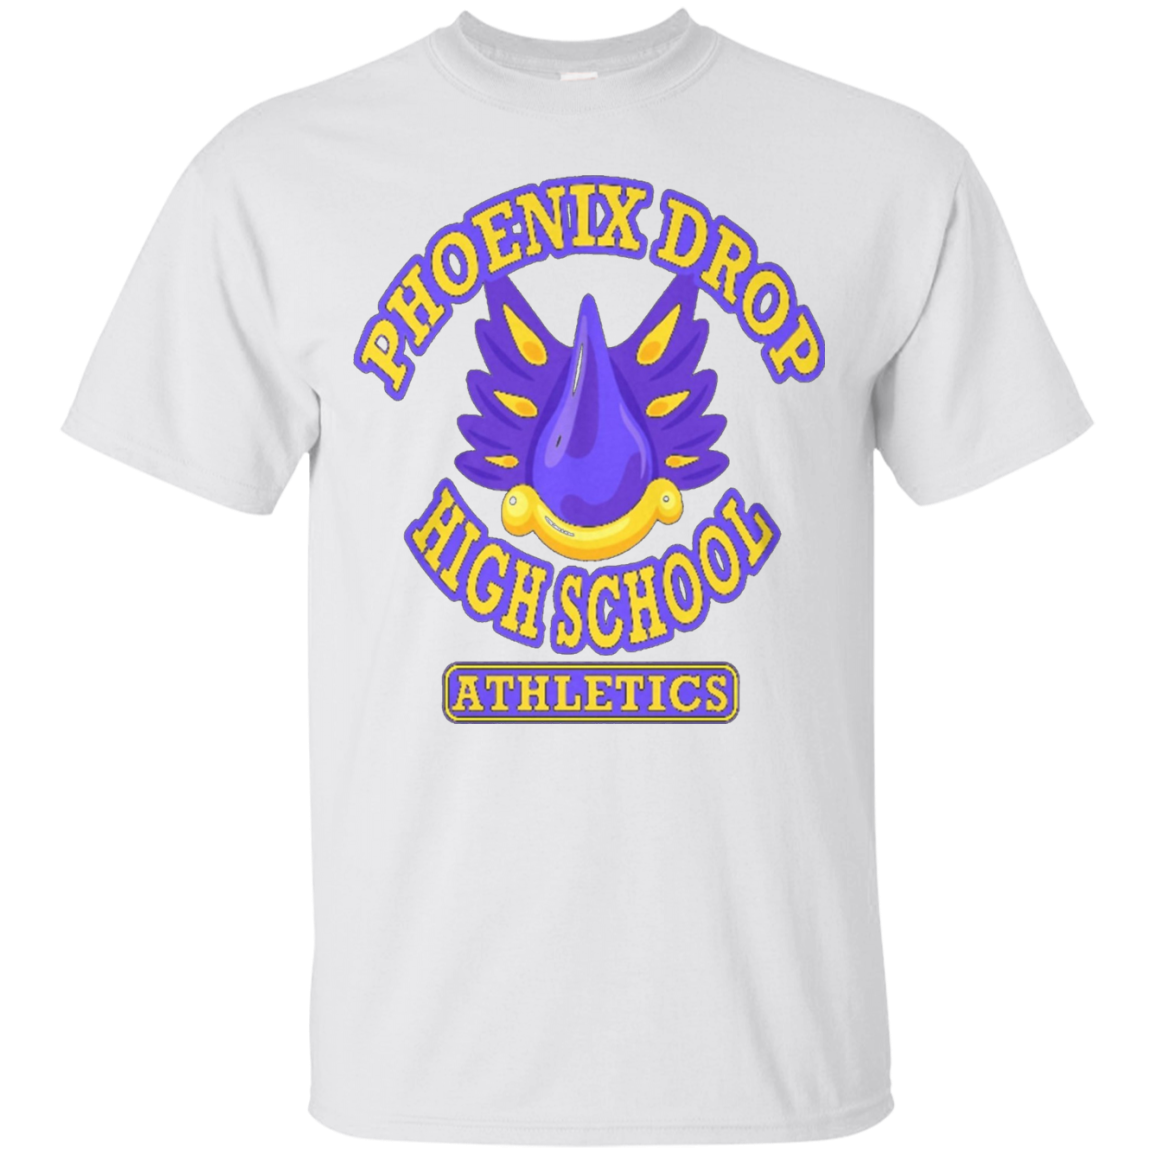 Athlete TShirts – PHOENIX DROP – HIGH SCHOOL – ATHLETICS